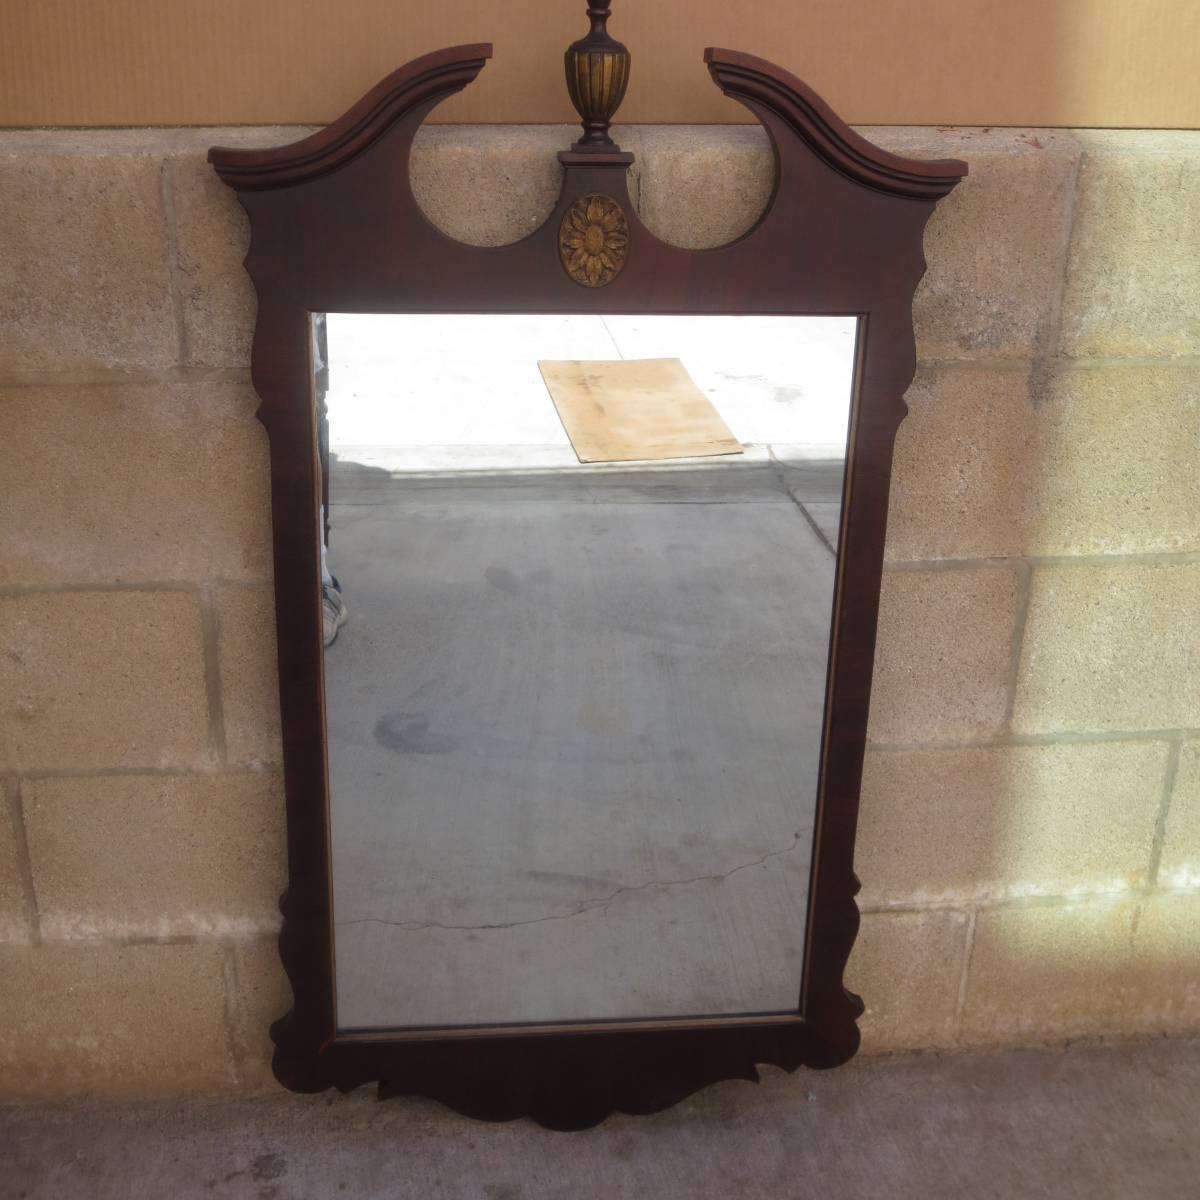 Antique Mirrors, Vintage Mirrors, Antique Wall Mirrors, And French With Regard To Old Fashioned Mirrors (View 17 of 25)